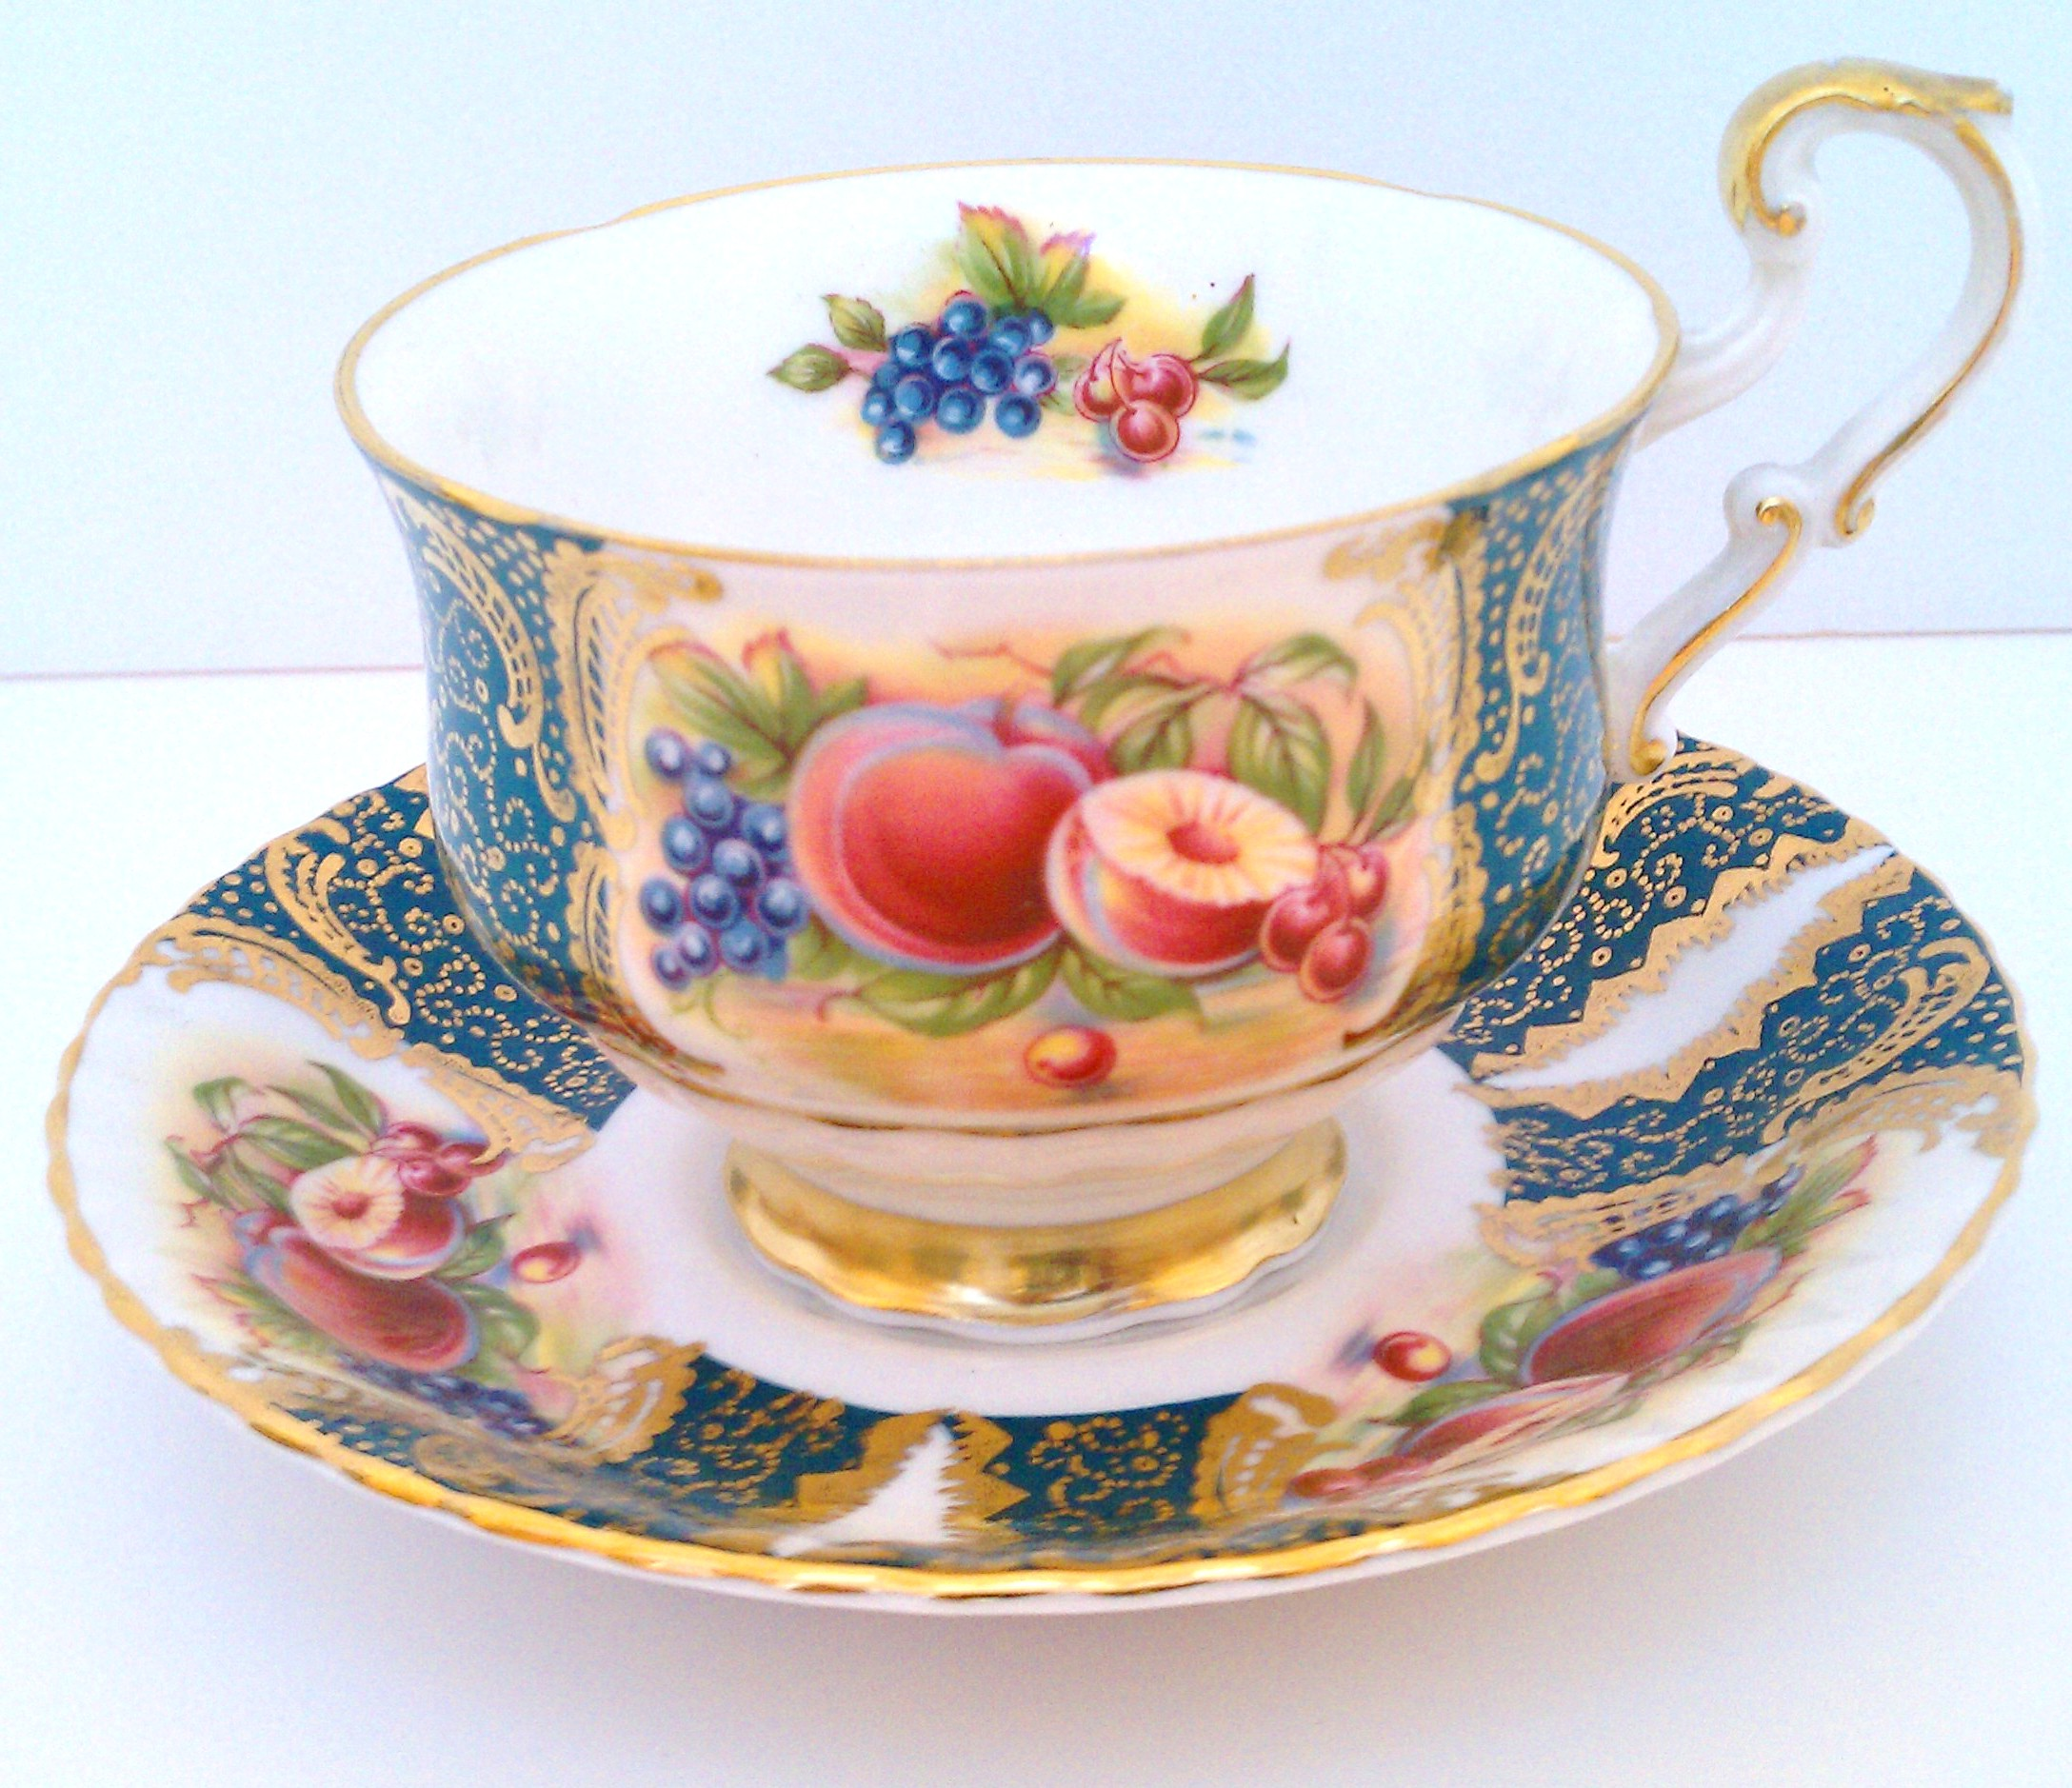 Peaches motif cup and saucer by Paragon China ... made in England